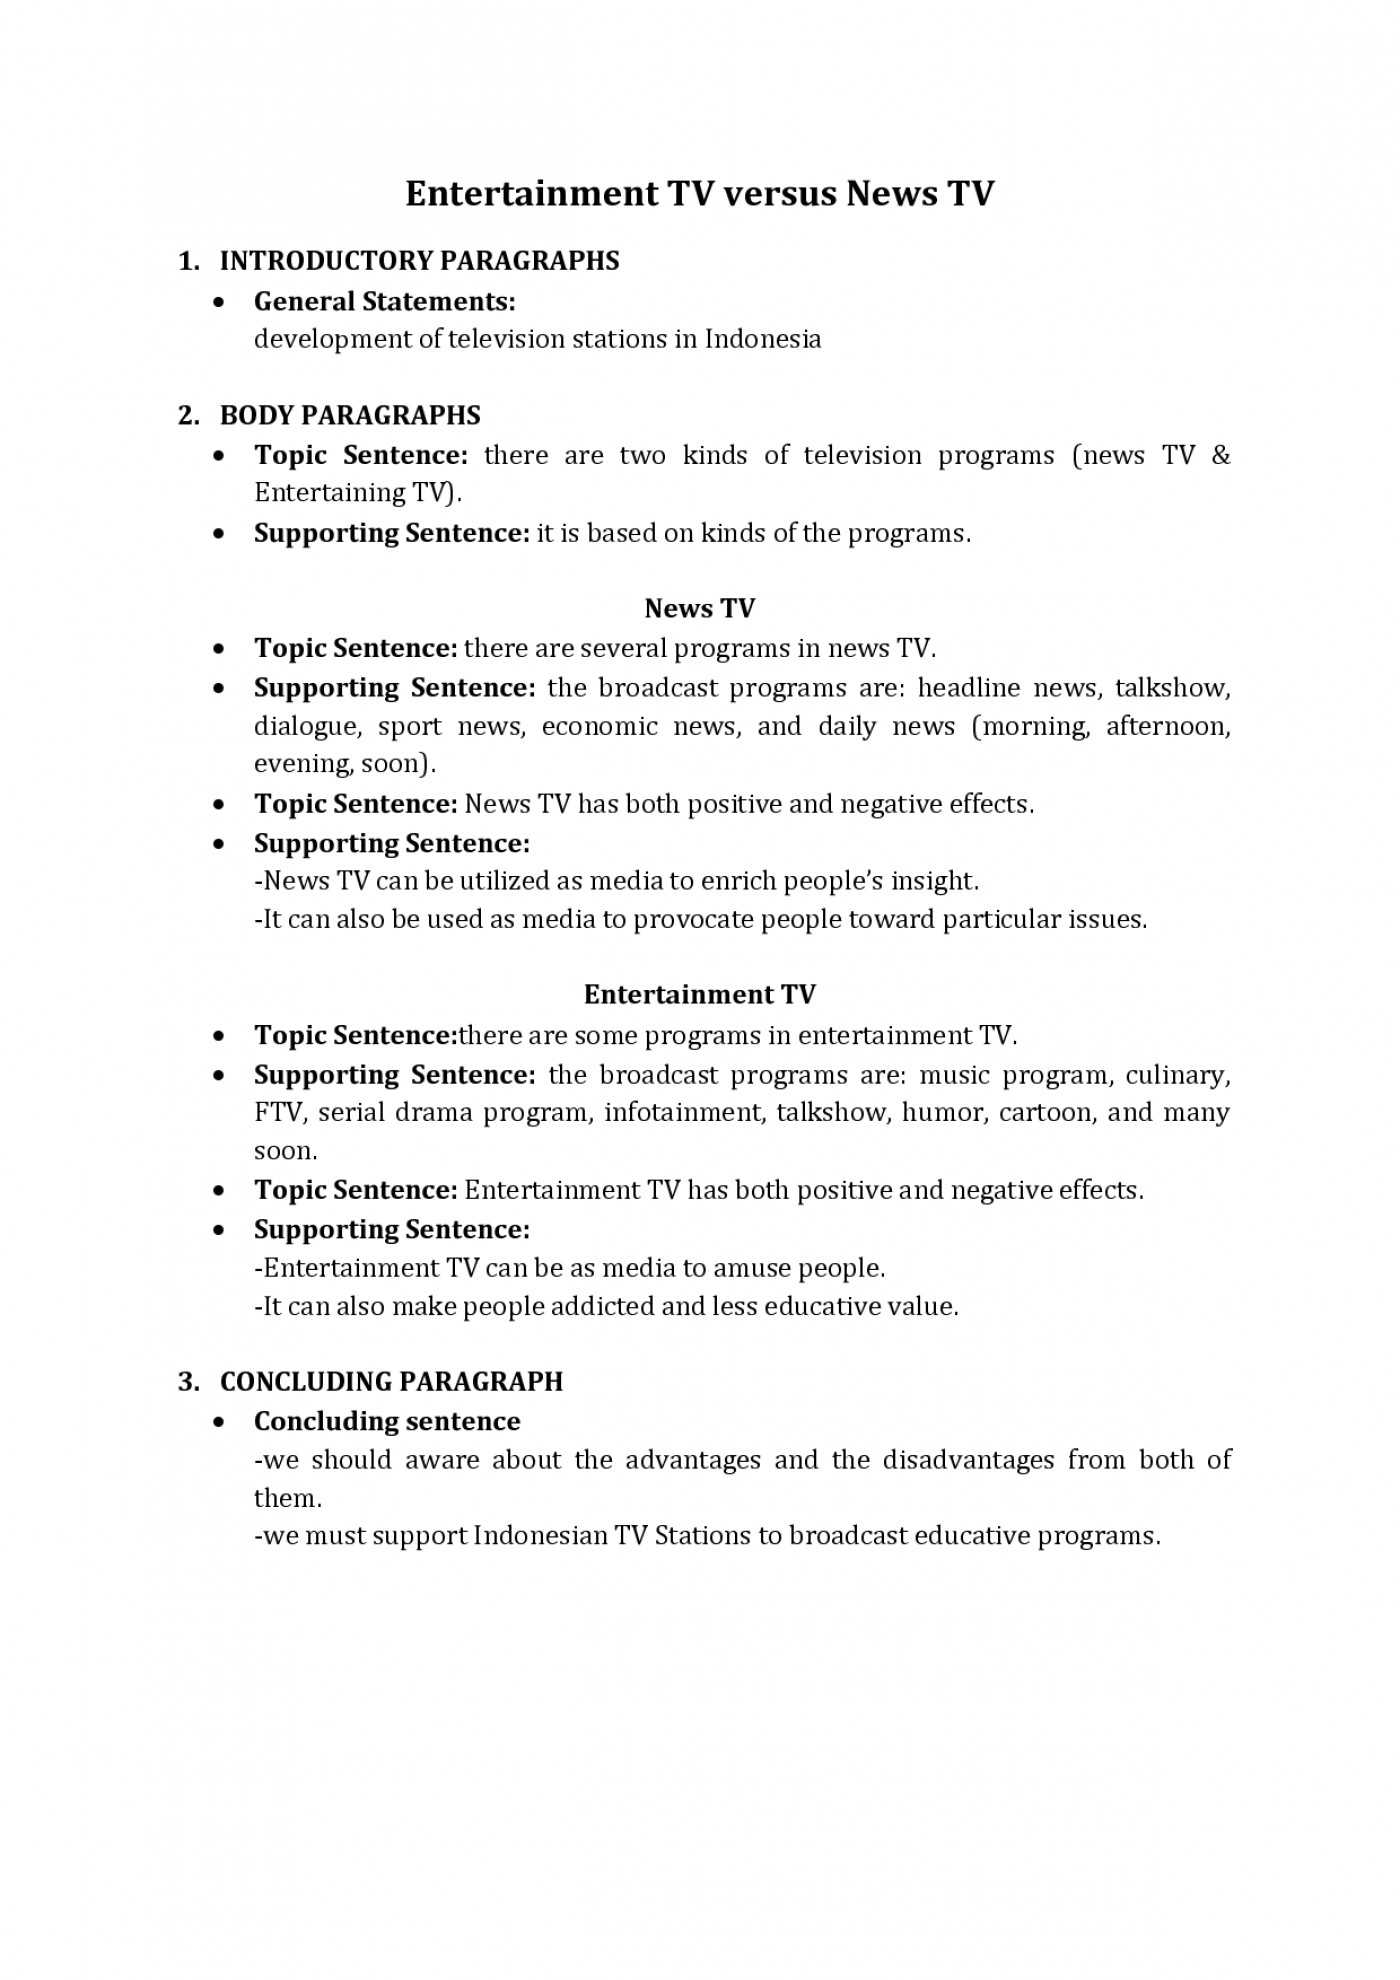 005 Fbunmxinib How To Write An Essay Outline Excellent Middle School A Term Paper Pdf Research Mla Format 1400